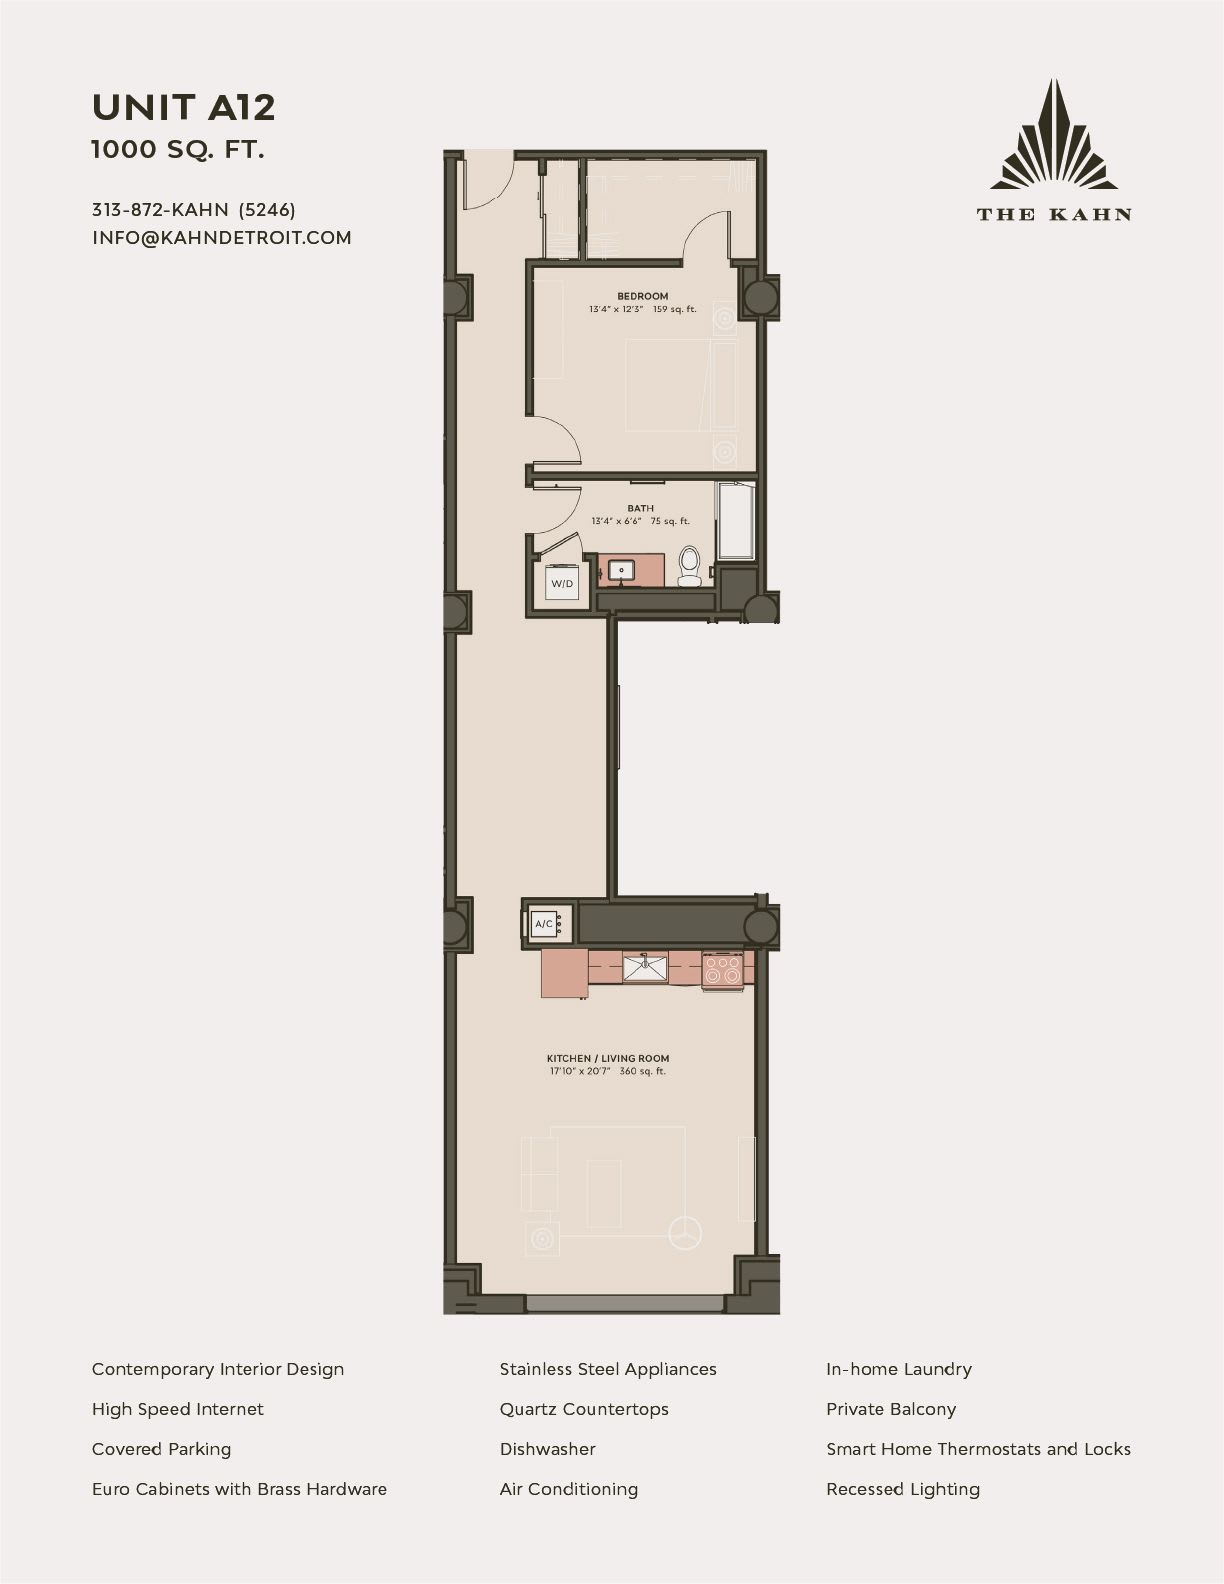 A12 floor plan image at The Kahn in Detroit, Michigan